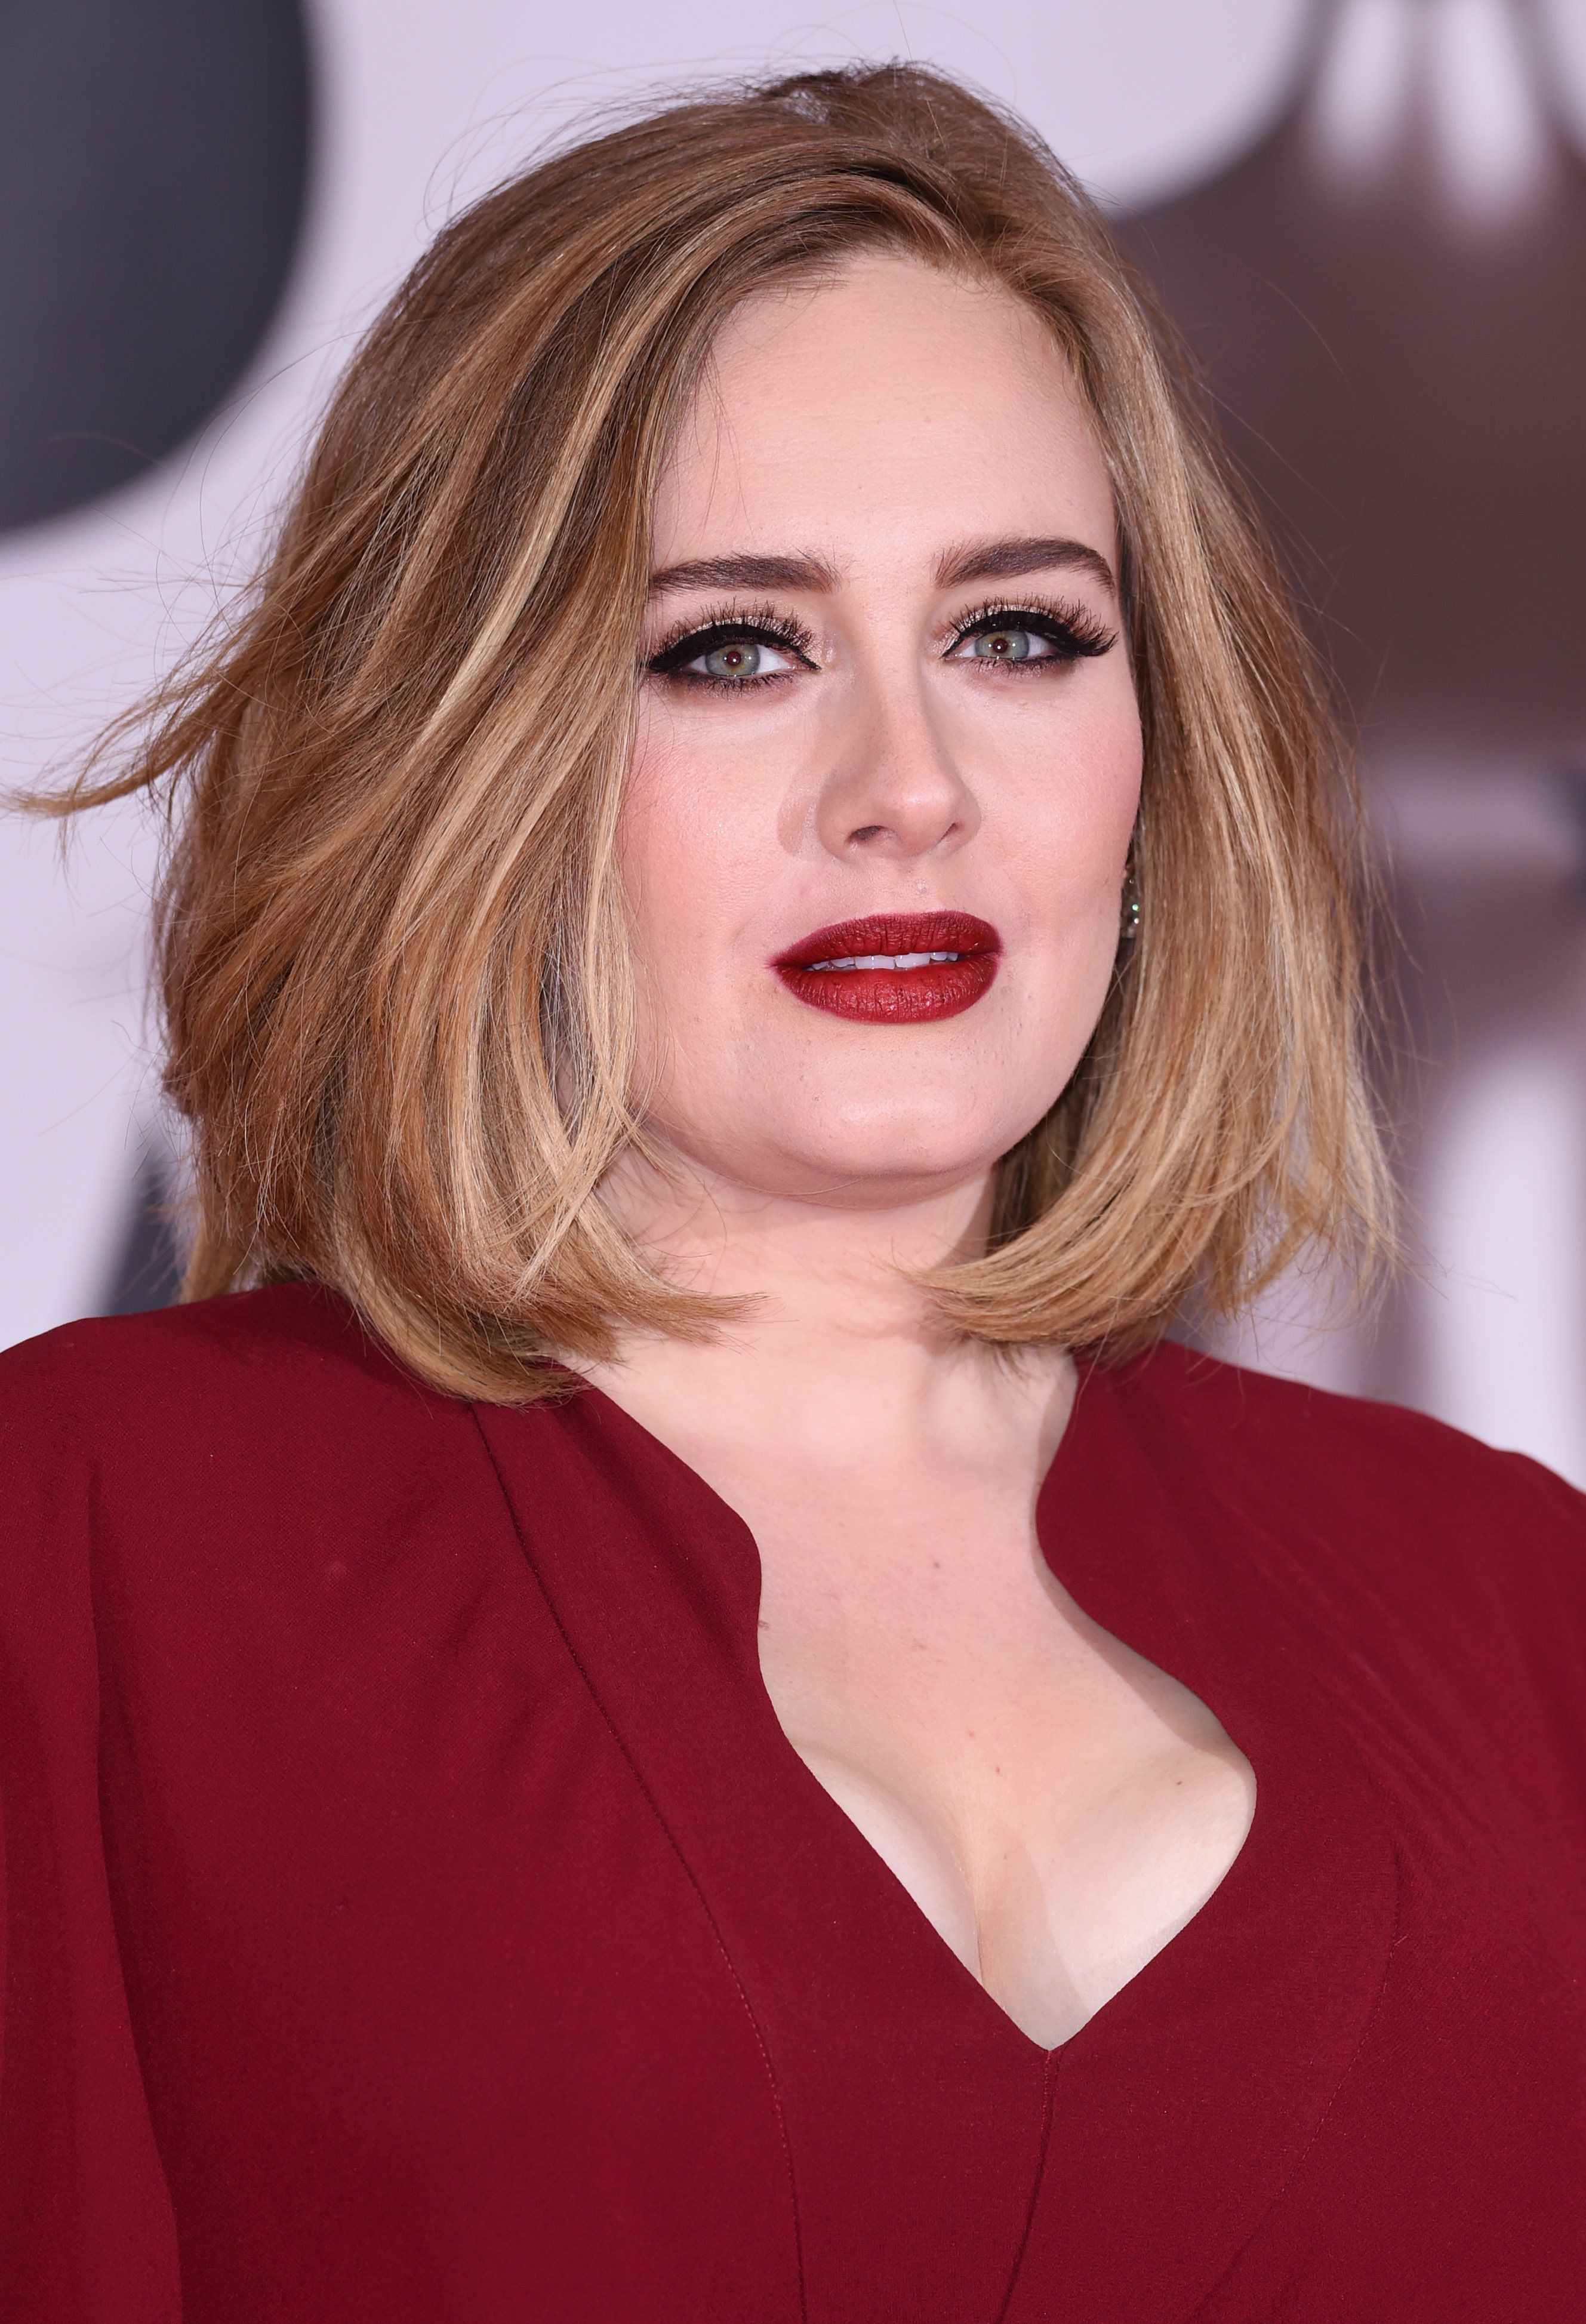 Adele Lands Record-Breaking £90m New Record Deal As 'Send My Love (To Your New Lover)' Video